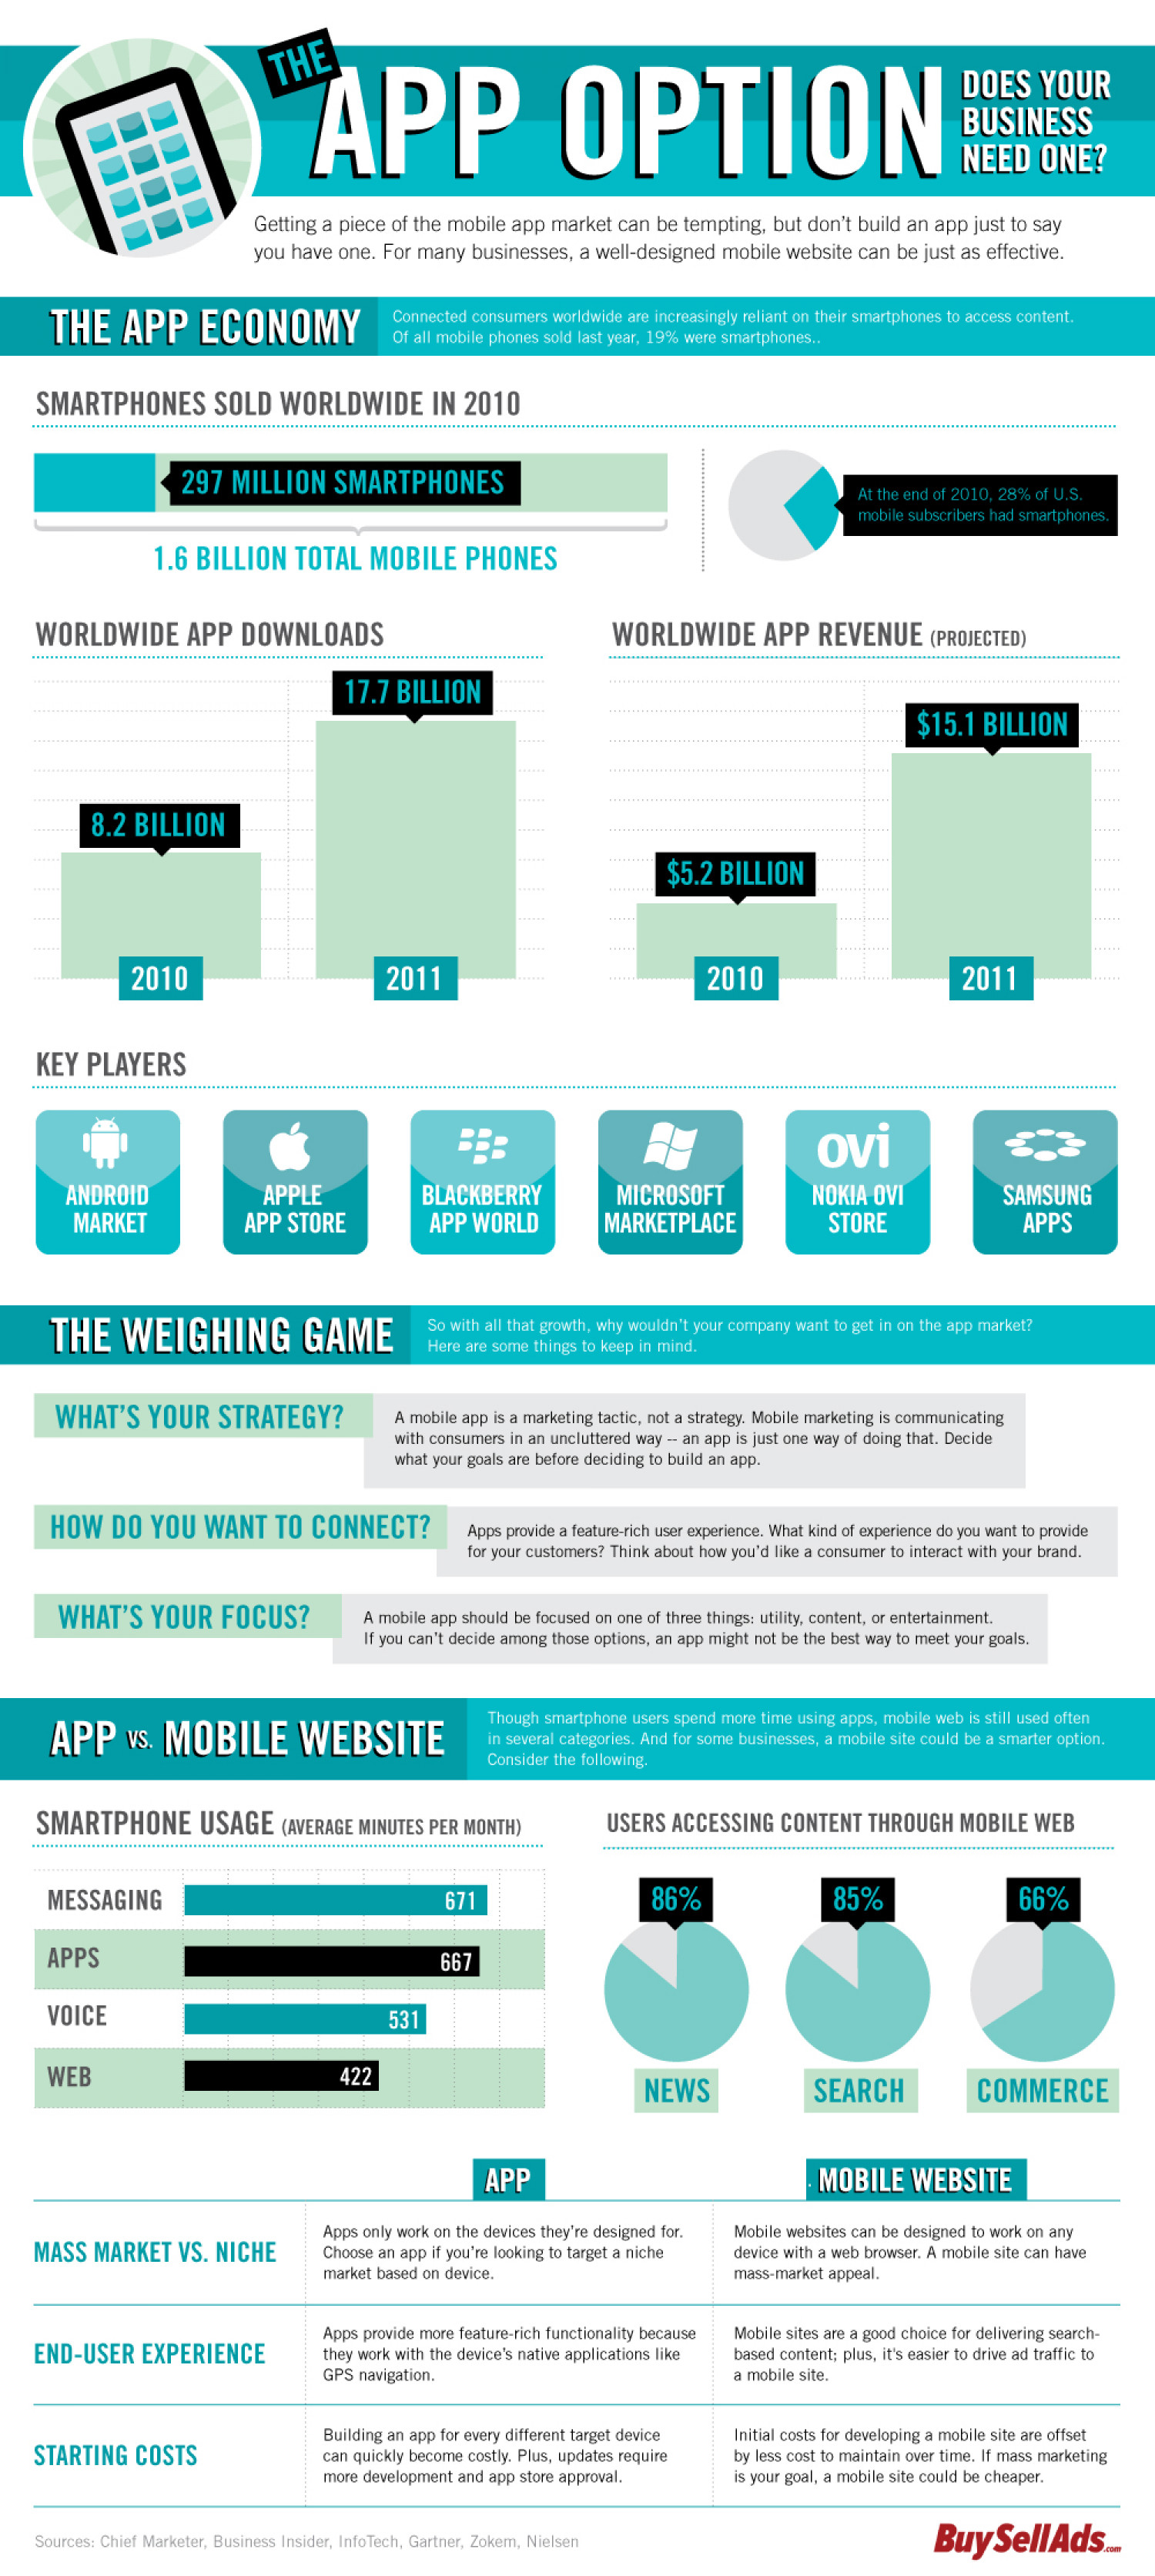 The App Option Infographic